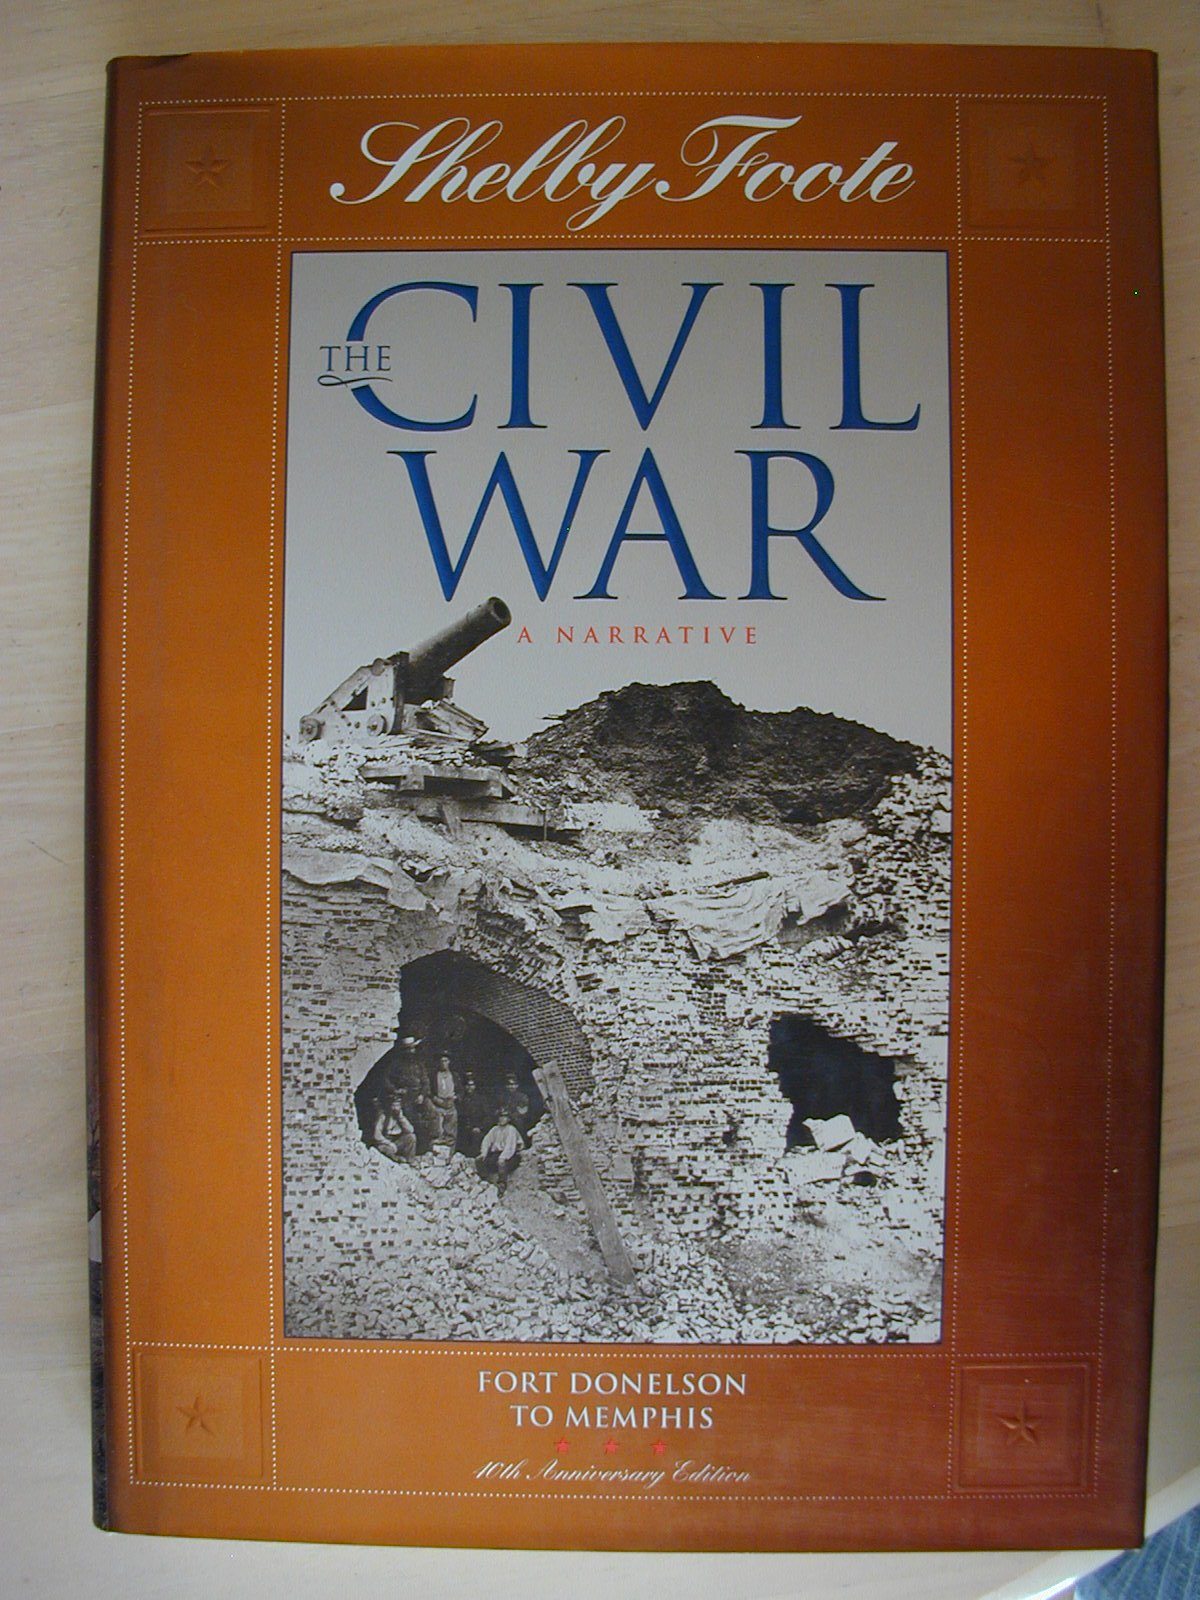 The Civil War A Narrative Vol 2 Fort Donelson To Memphis Shelby Foote Time Life Books 9780783501017 Amazon Com Books